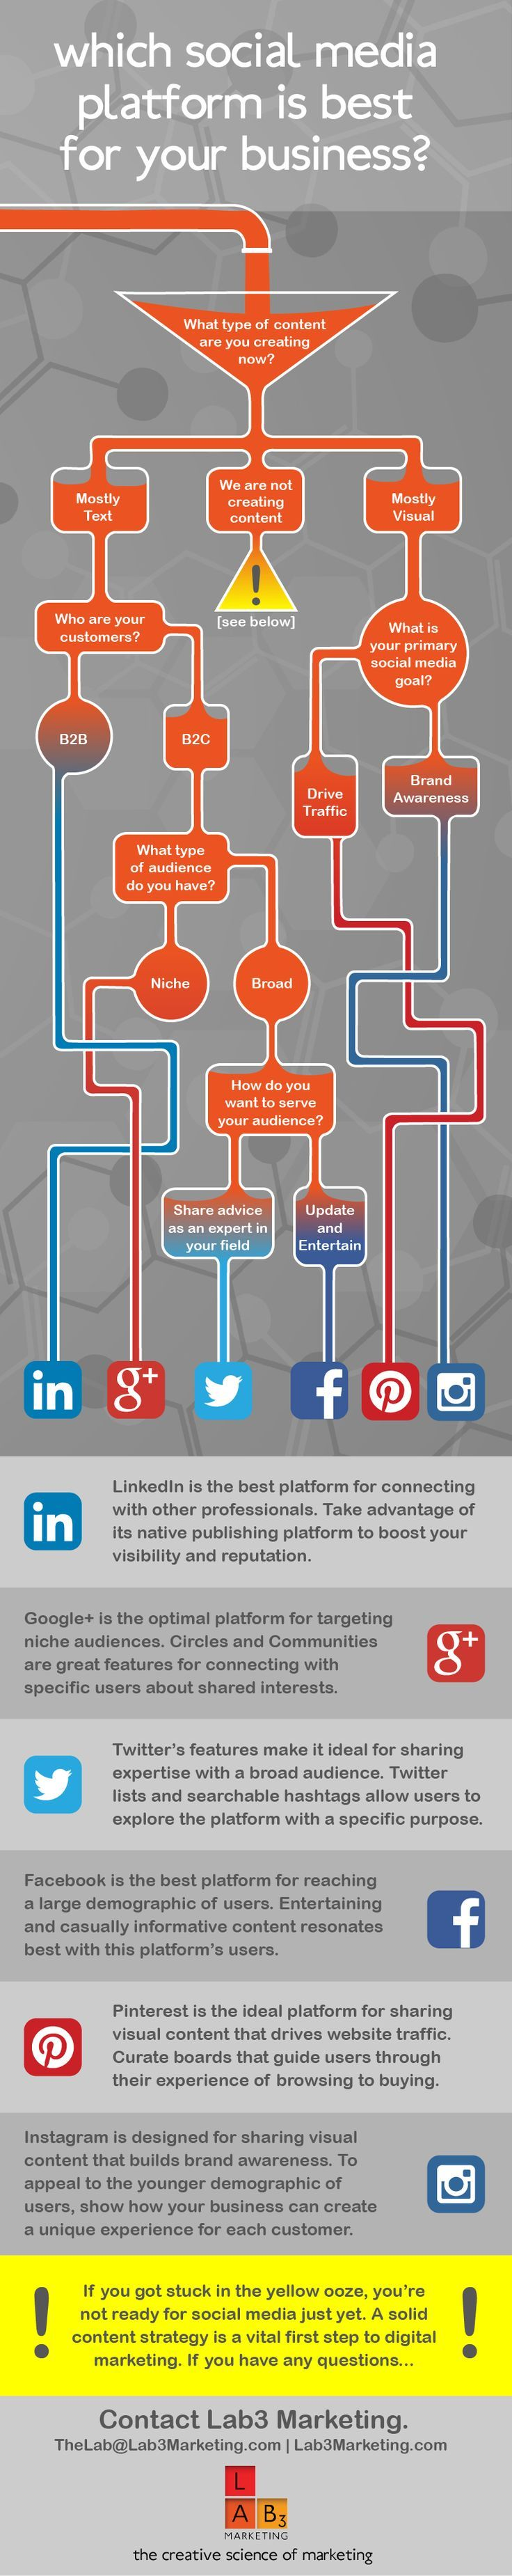 Follow the inflowgraphic to determine which social media platform is best for your business. Check out the blog for more detailed descriptions of each platform.